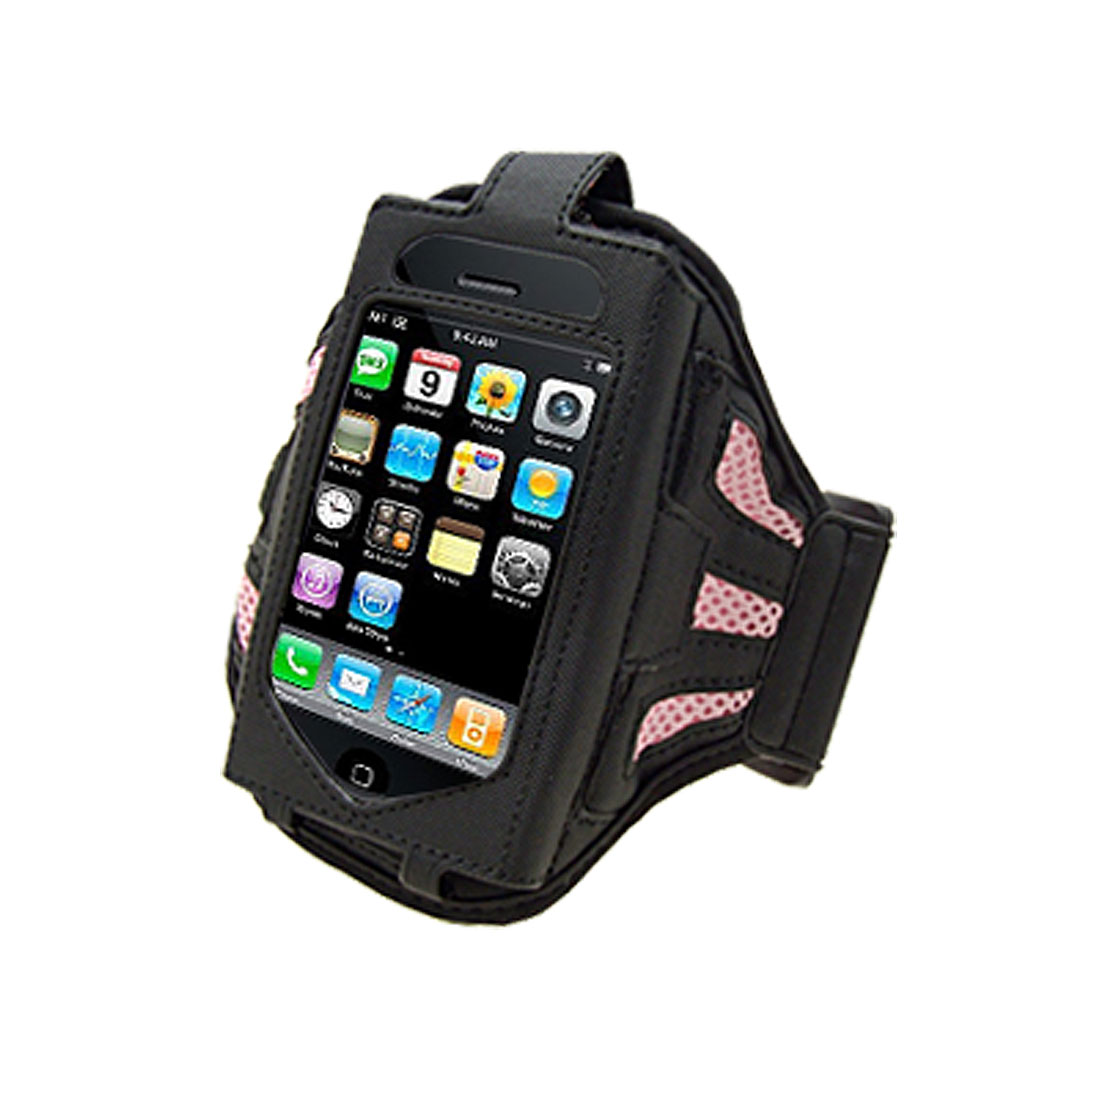 Washable Armband Case Holder for Apple iPhone 3G New